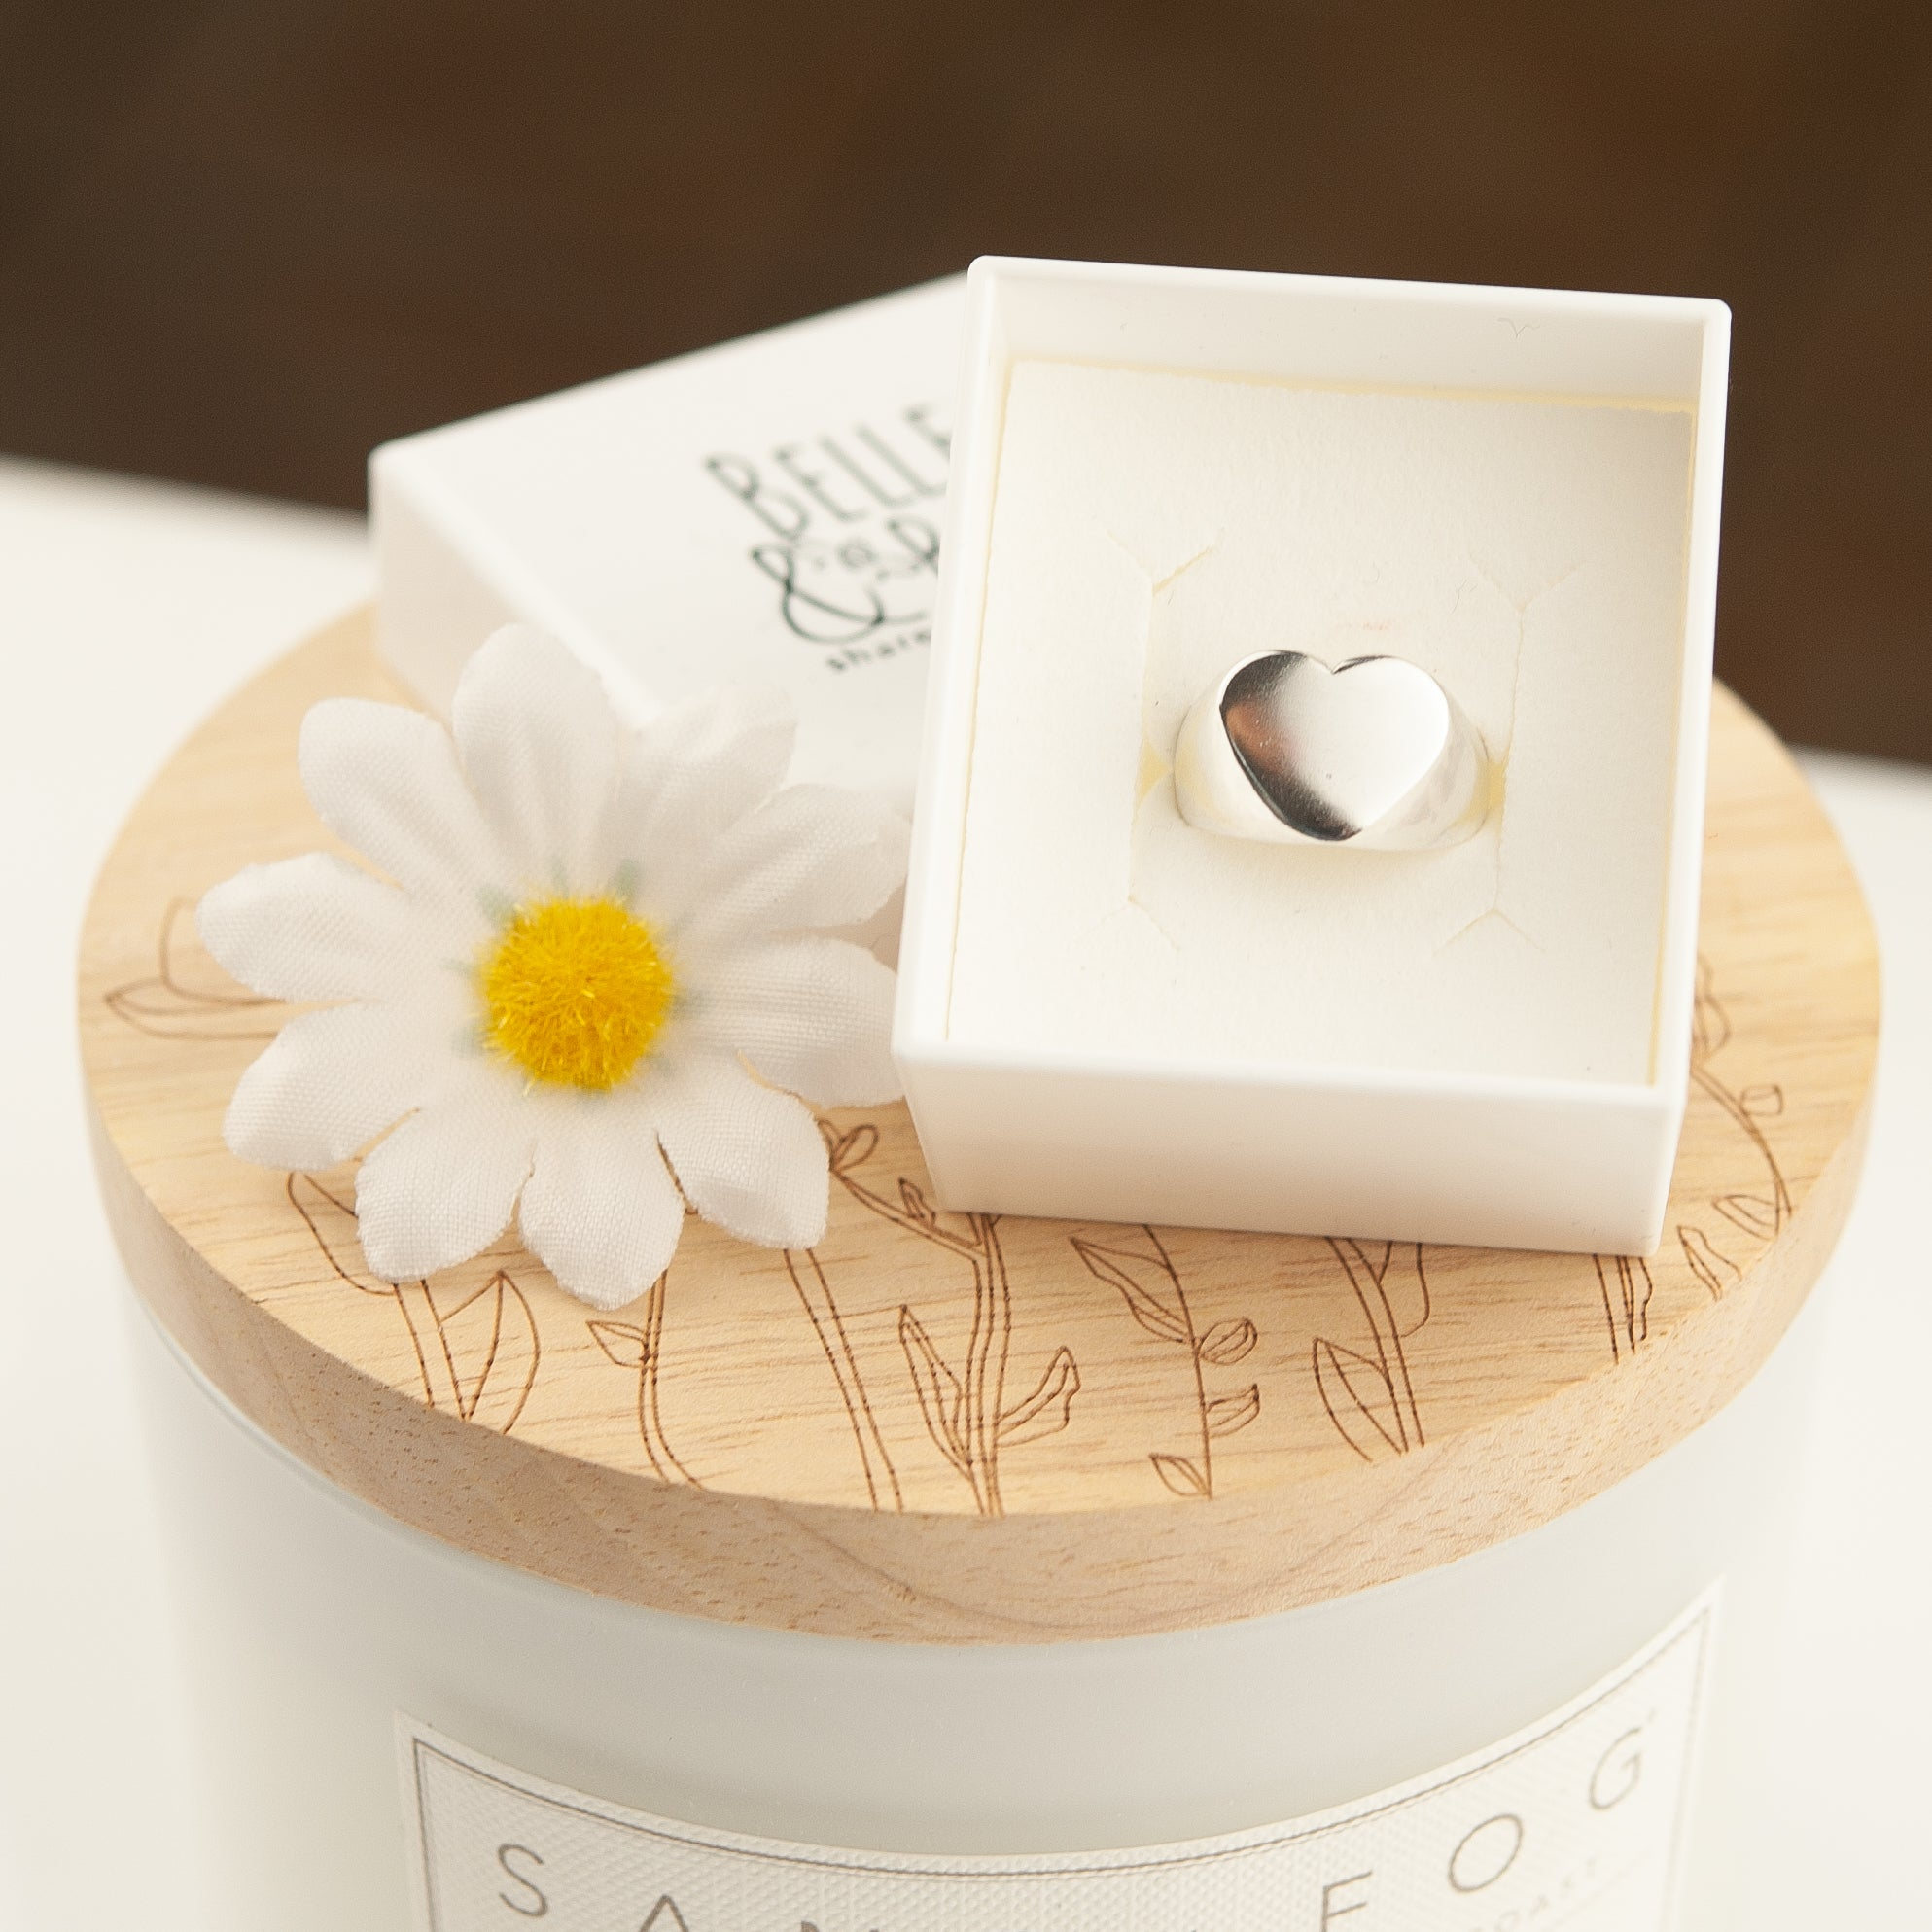 Belle & Bee chunky heart signet ring